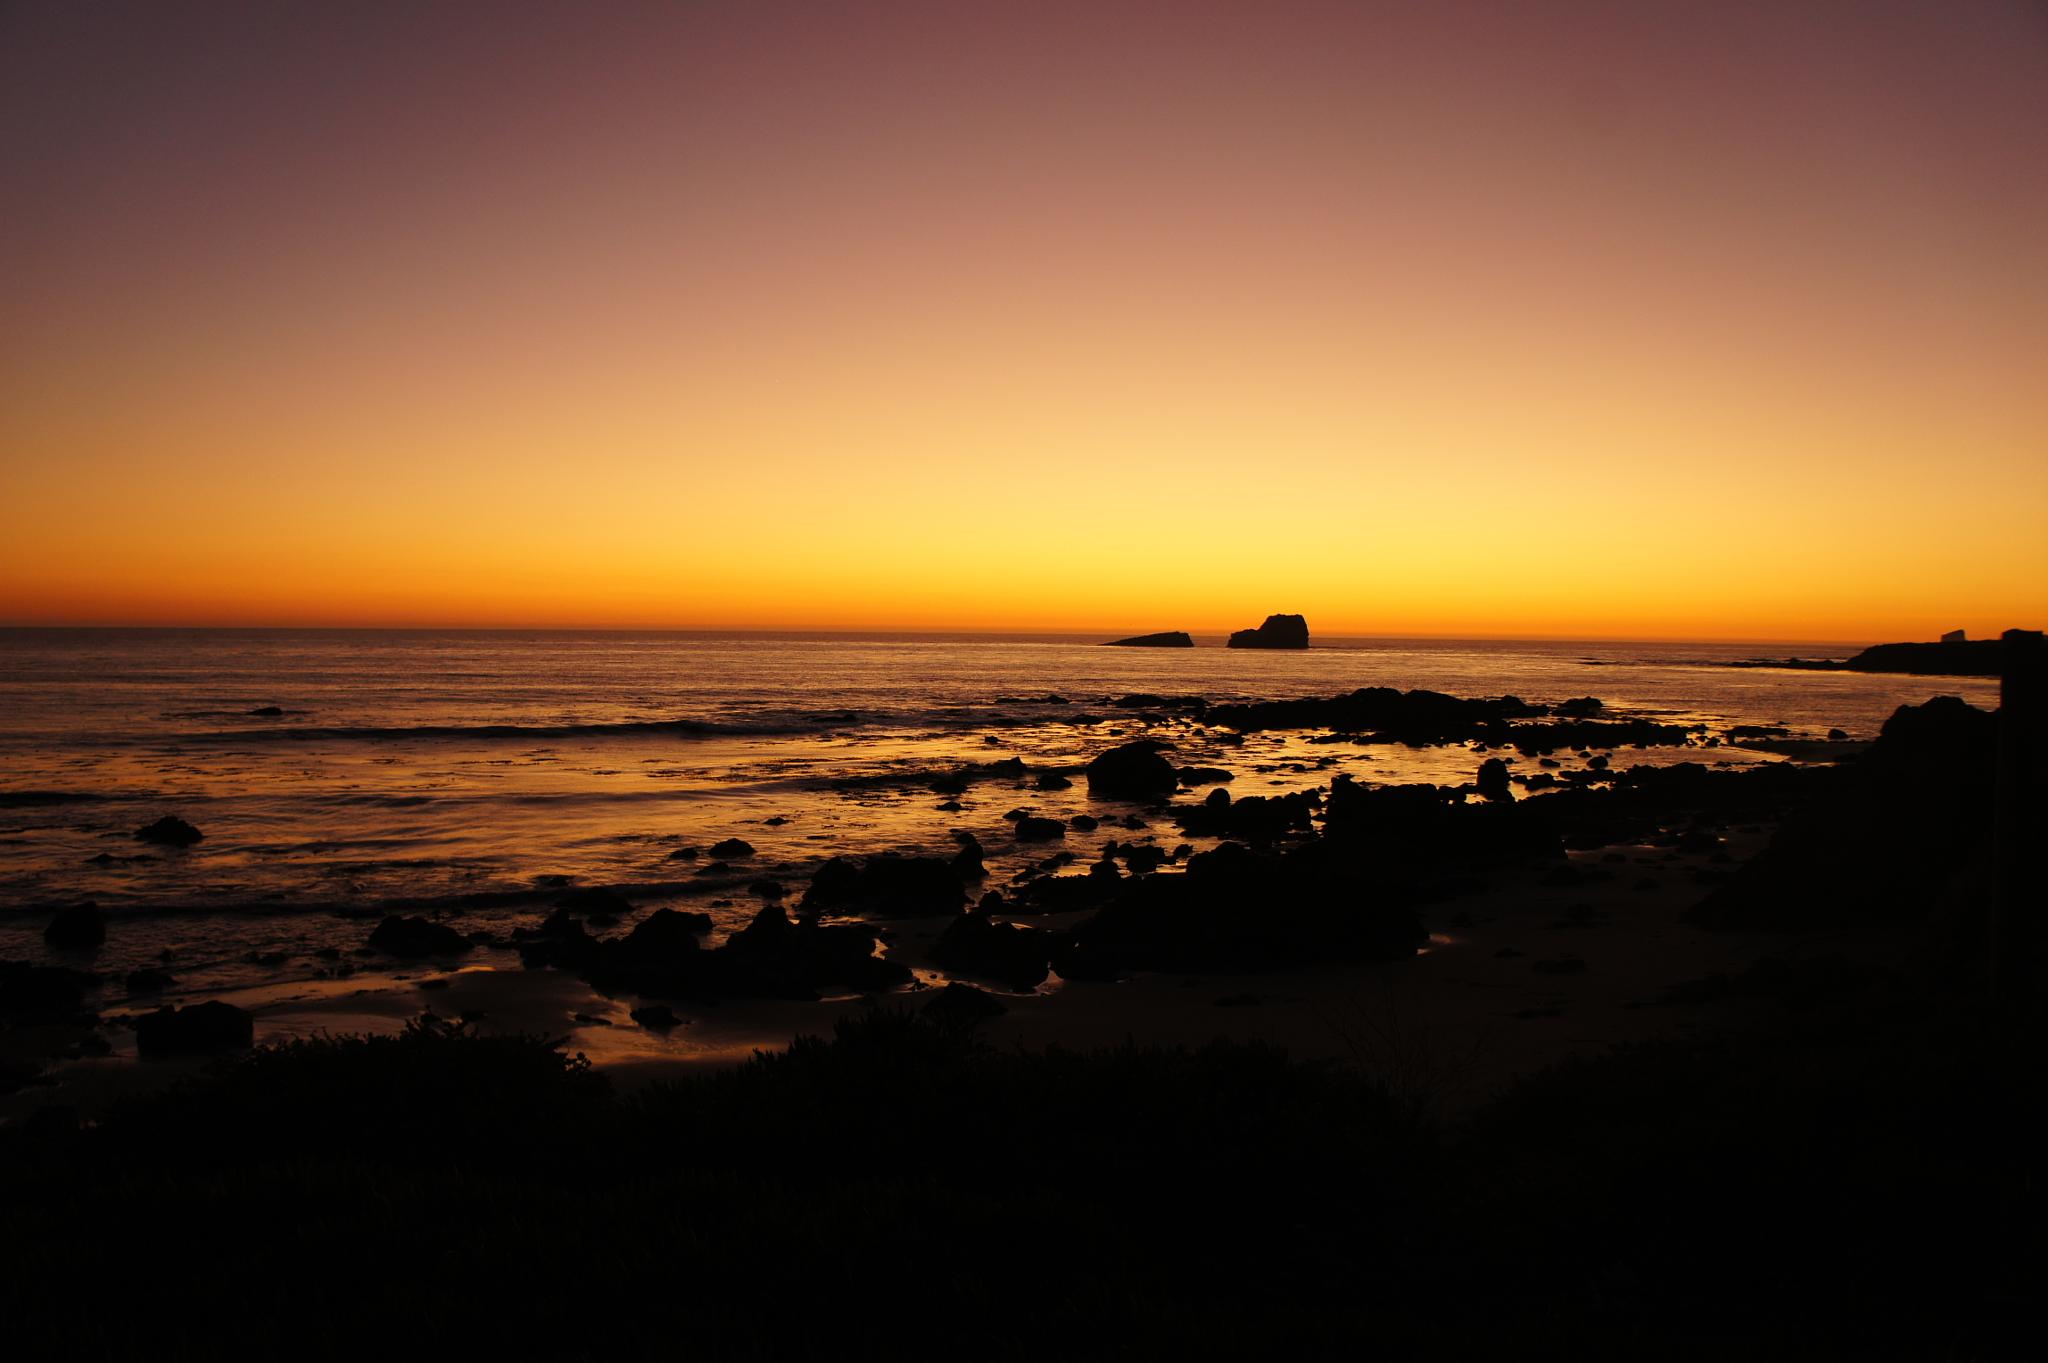 Sunset @ highway 1, San Simeone by Dave W